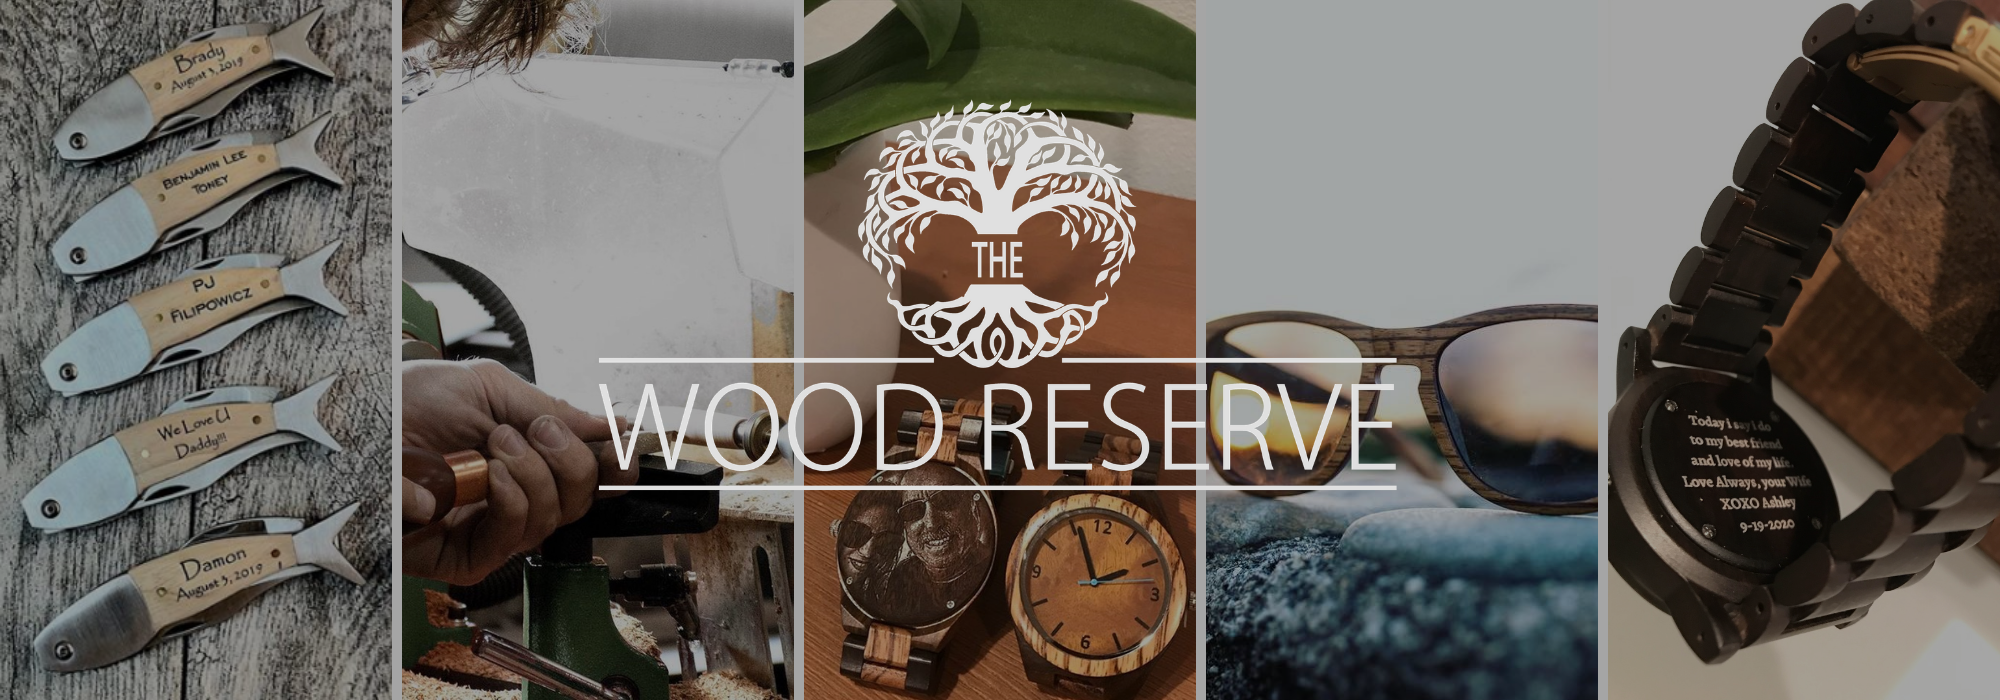 About The Wood Reserve